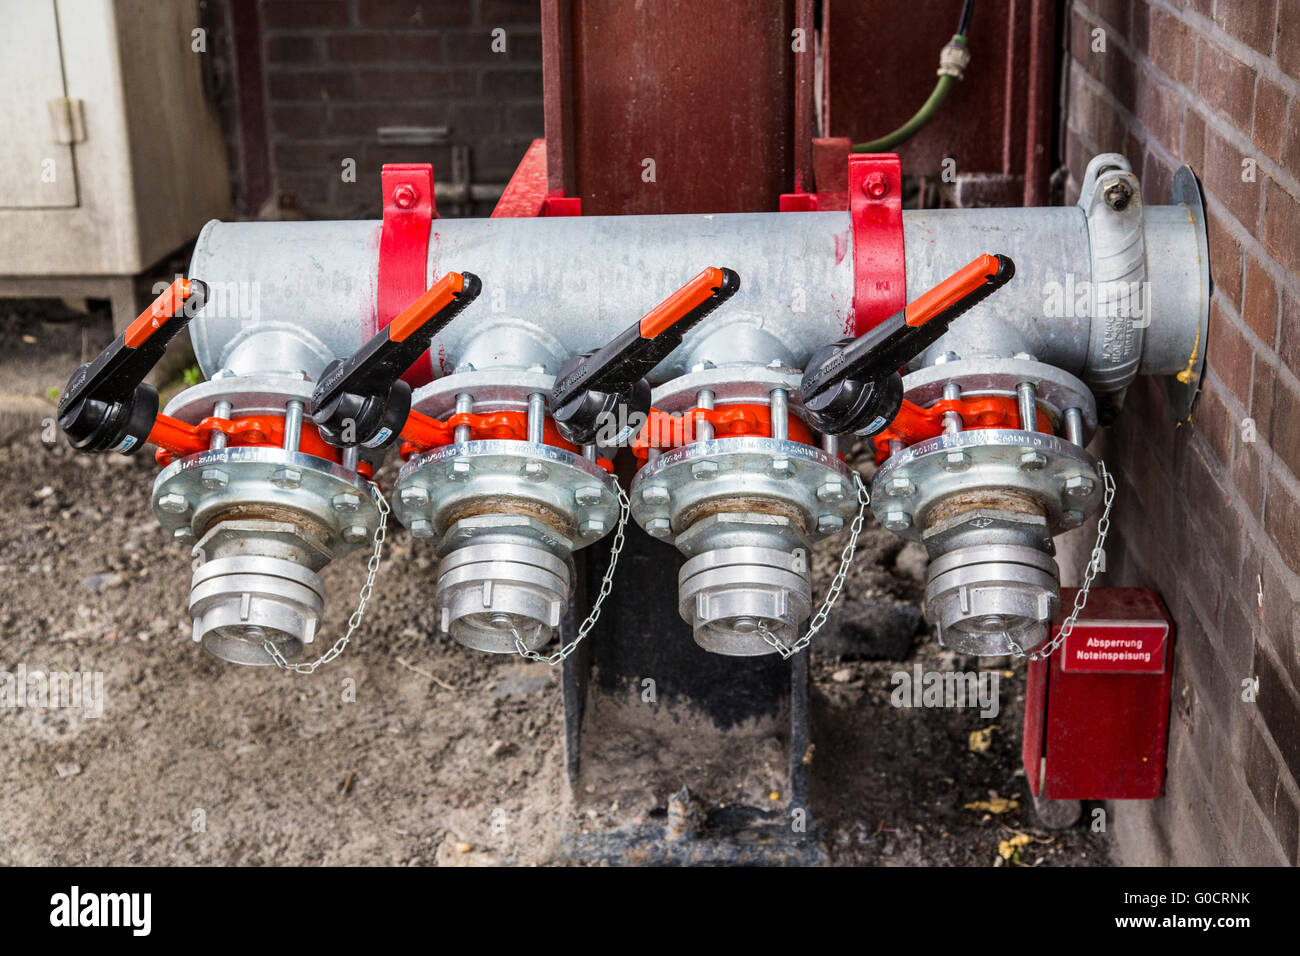 Connections for water supply by firefighters, emergency supply, shutoff valves, - Stock Image